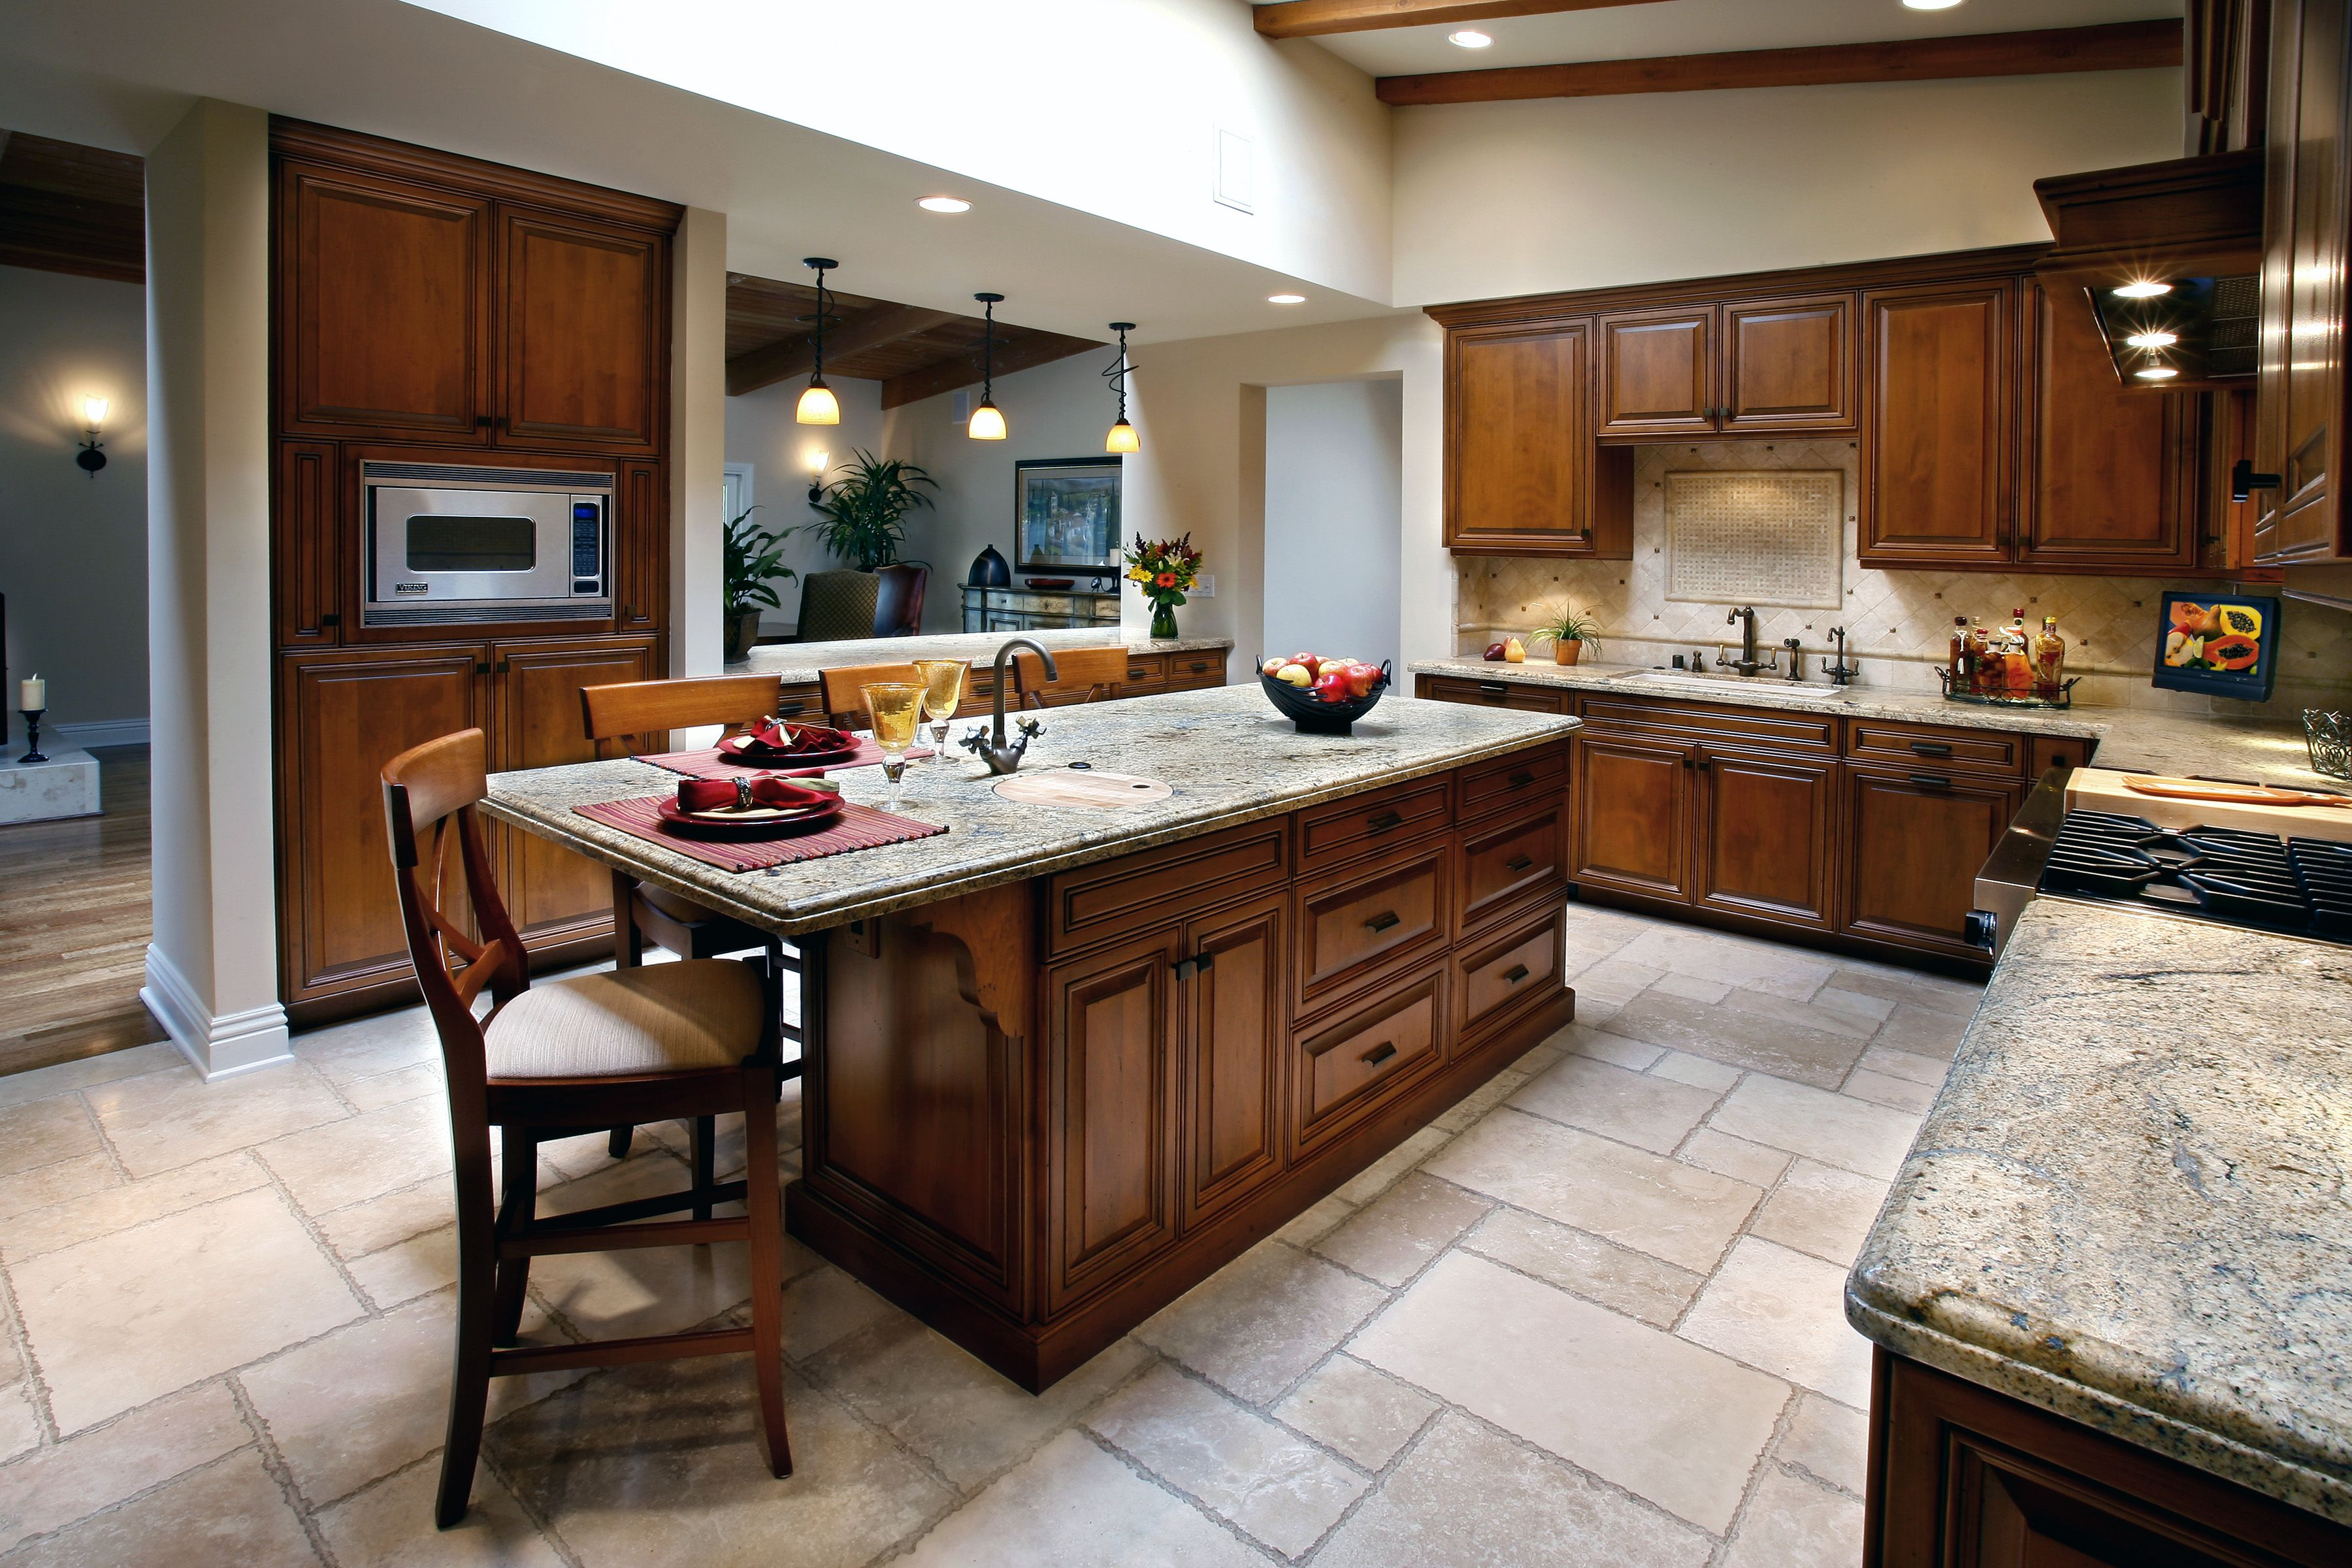 Dream Rustic Kitchens Pinarchinteriors Design Group Inc On Kitchensarch